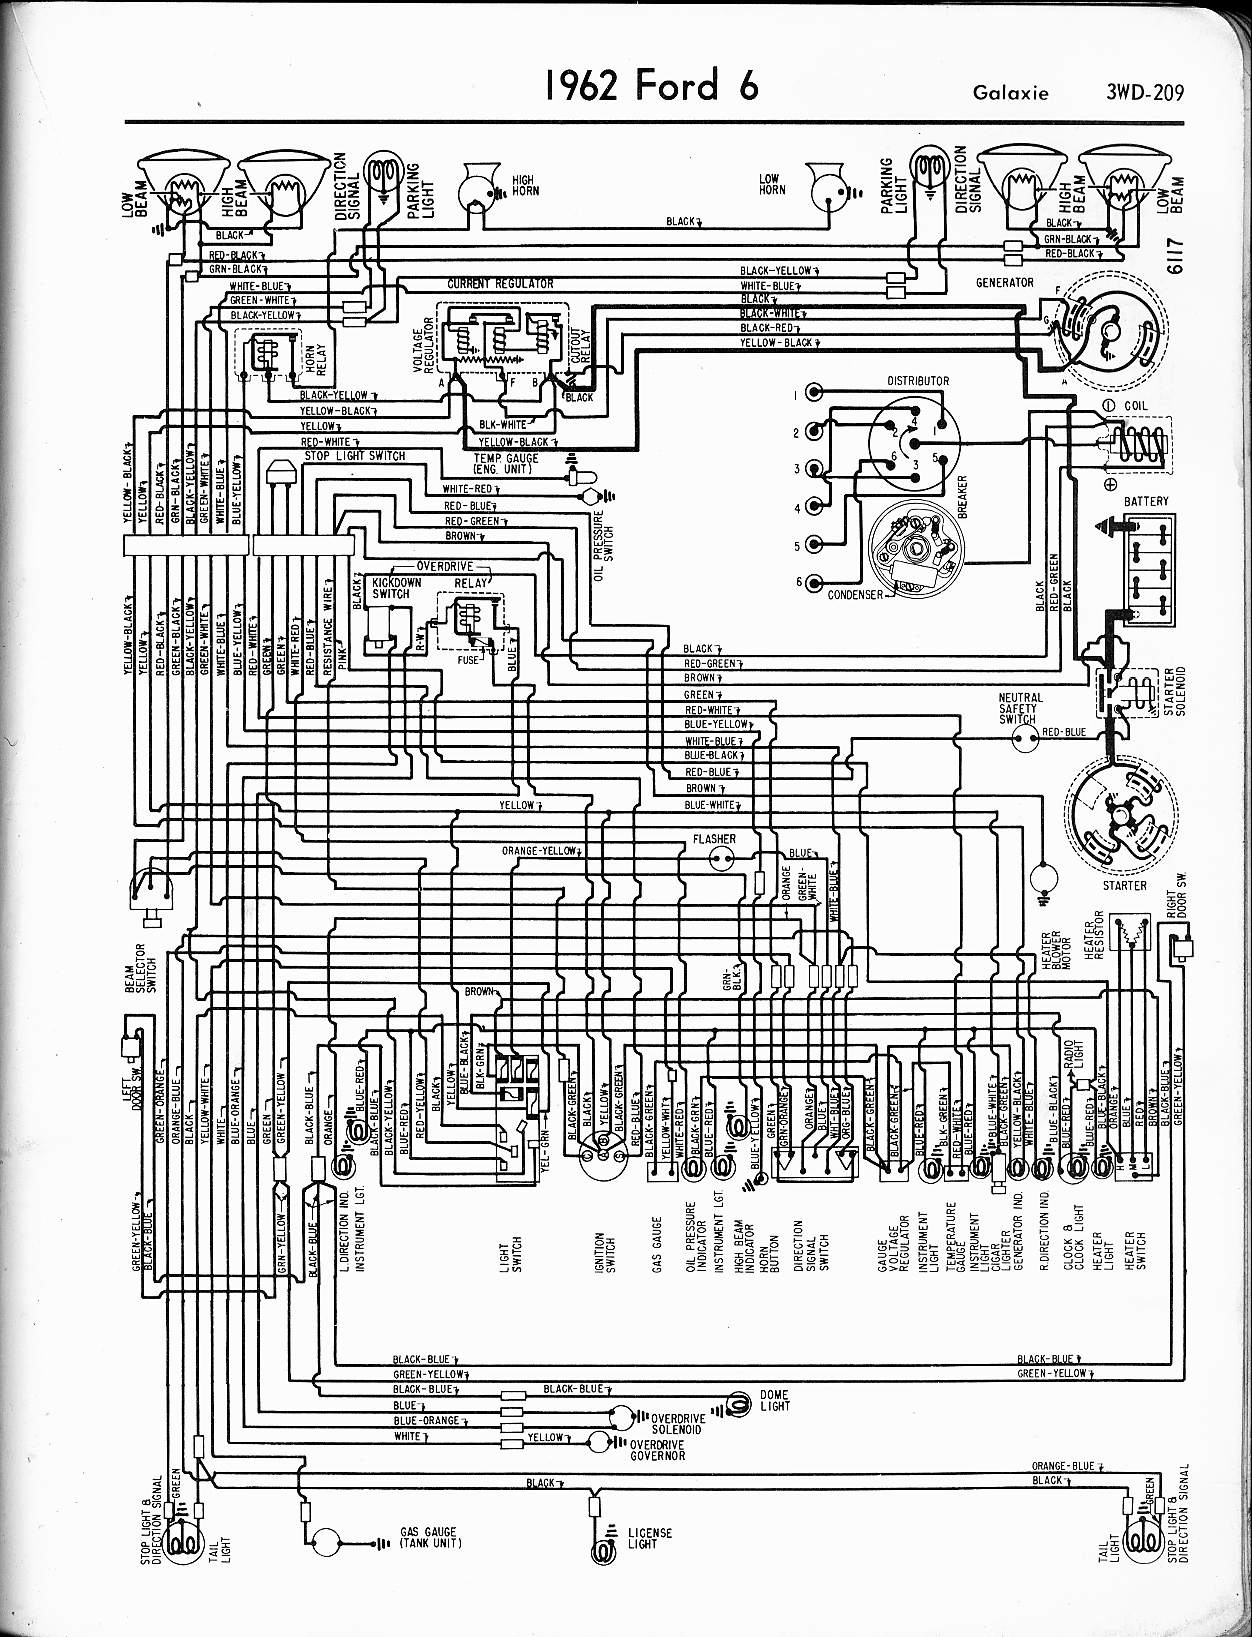 Mwire on 1957 Thunderbird Wiring Diagram